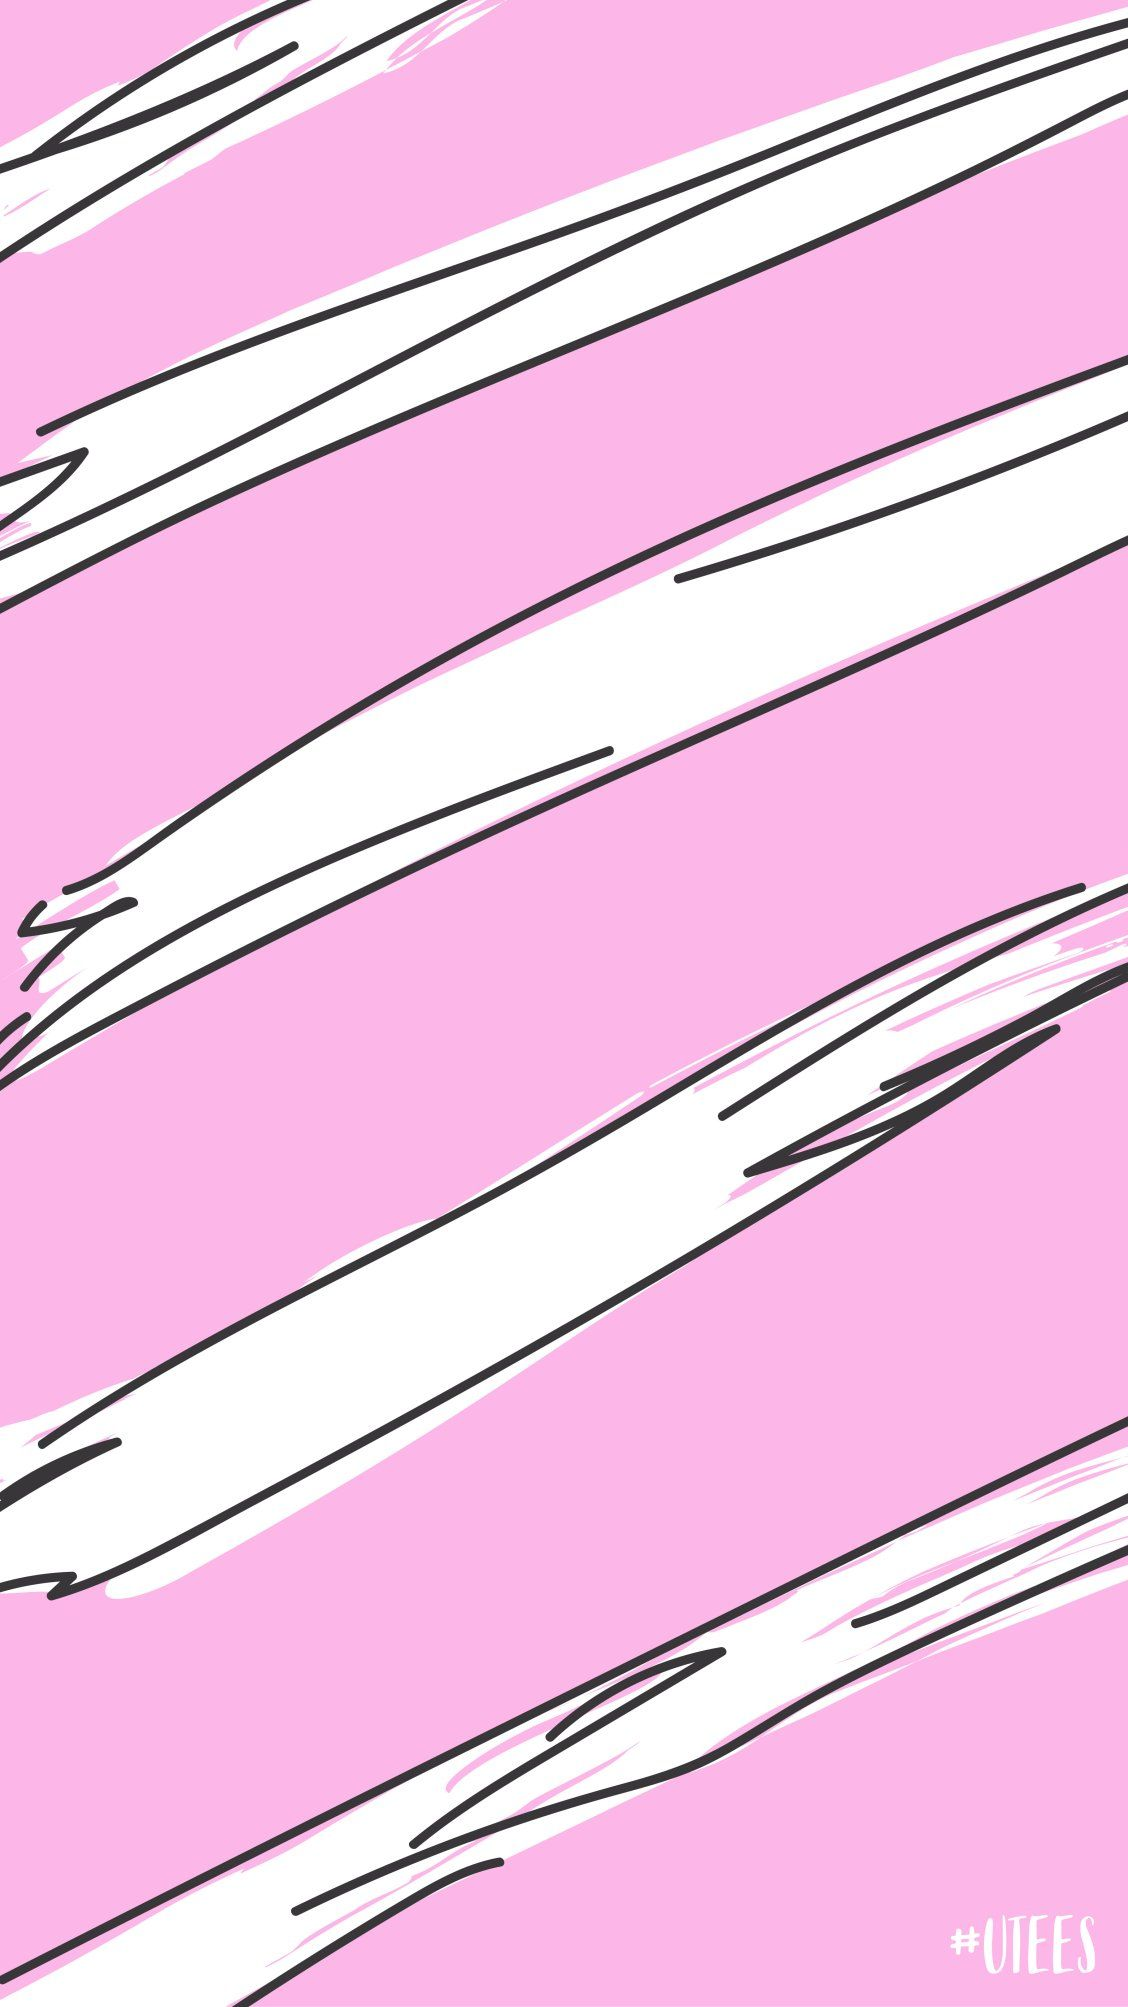 pink and white striped wallpaper screensaver background